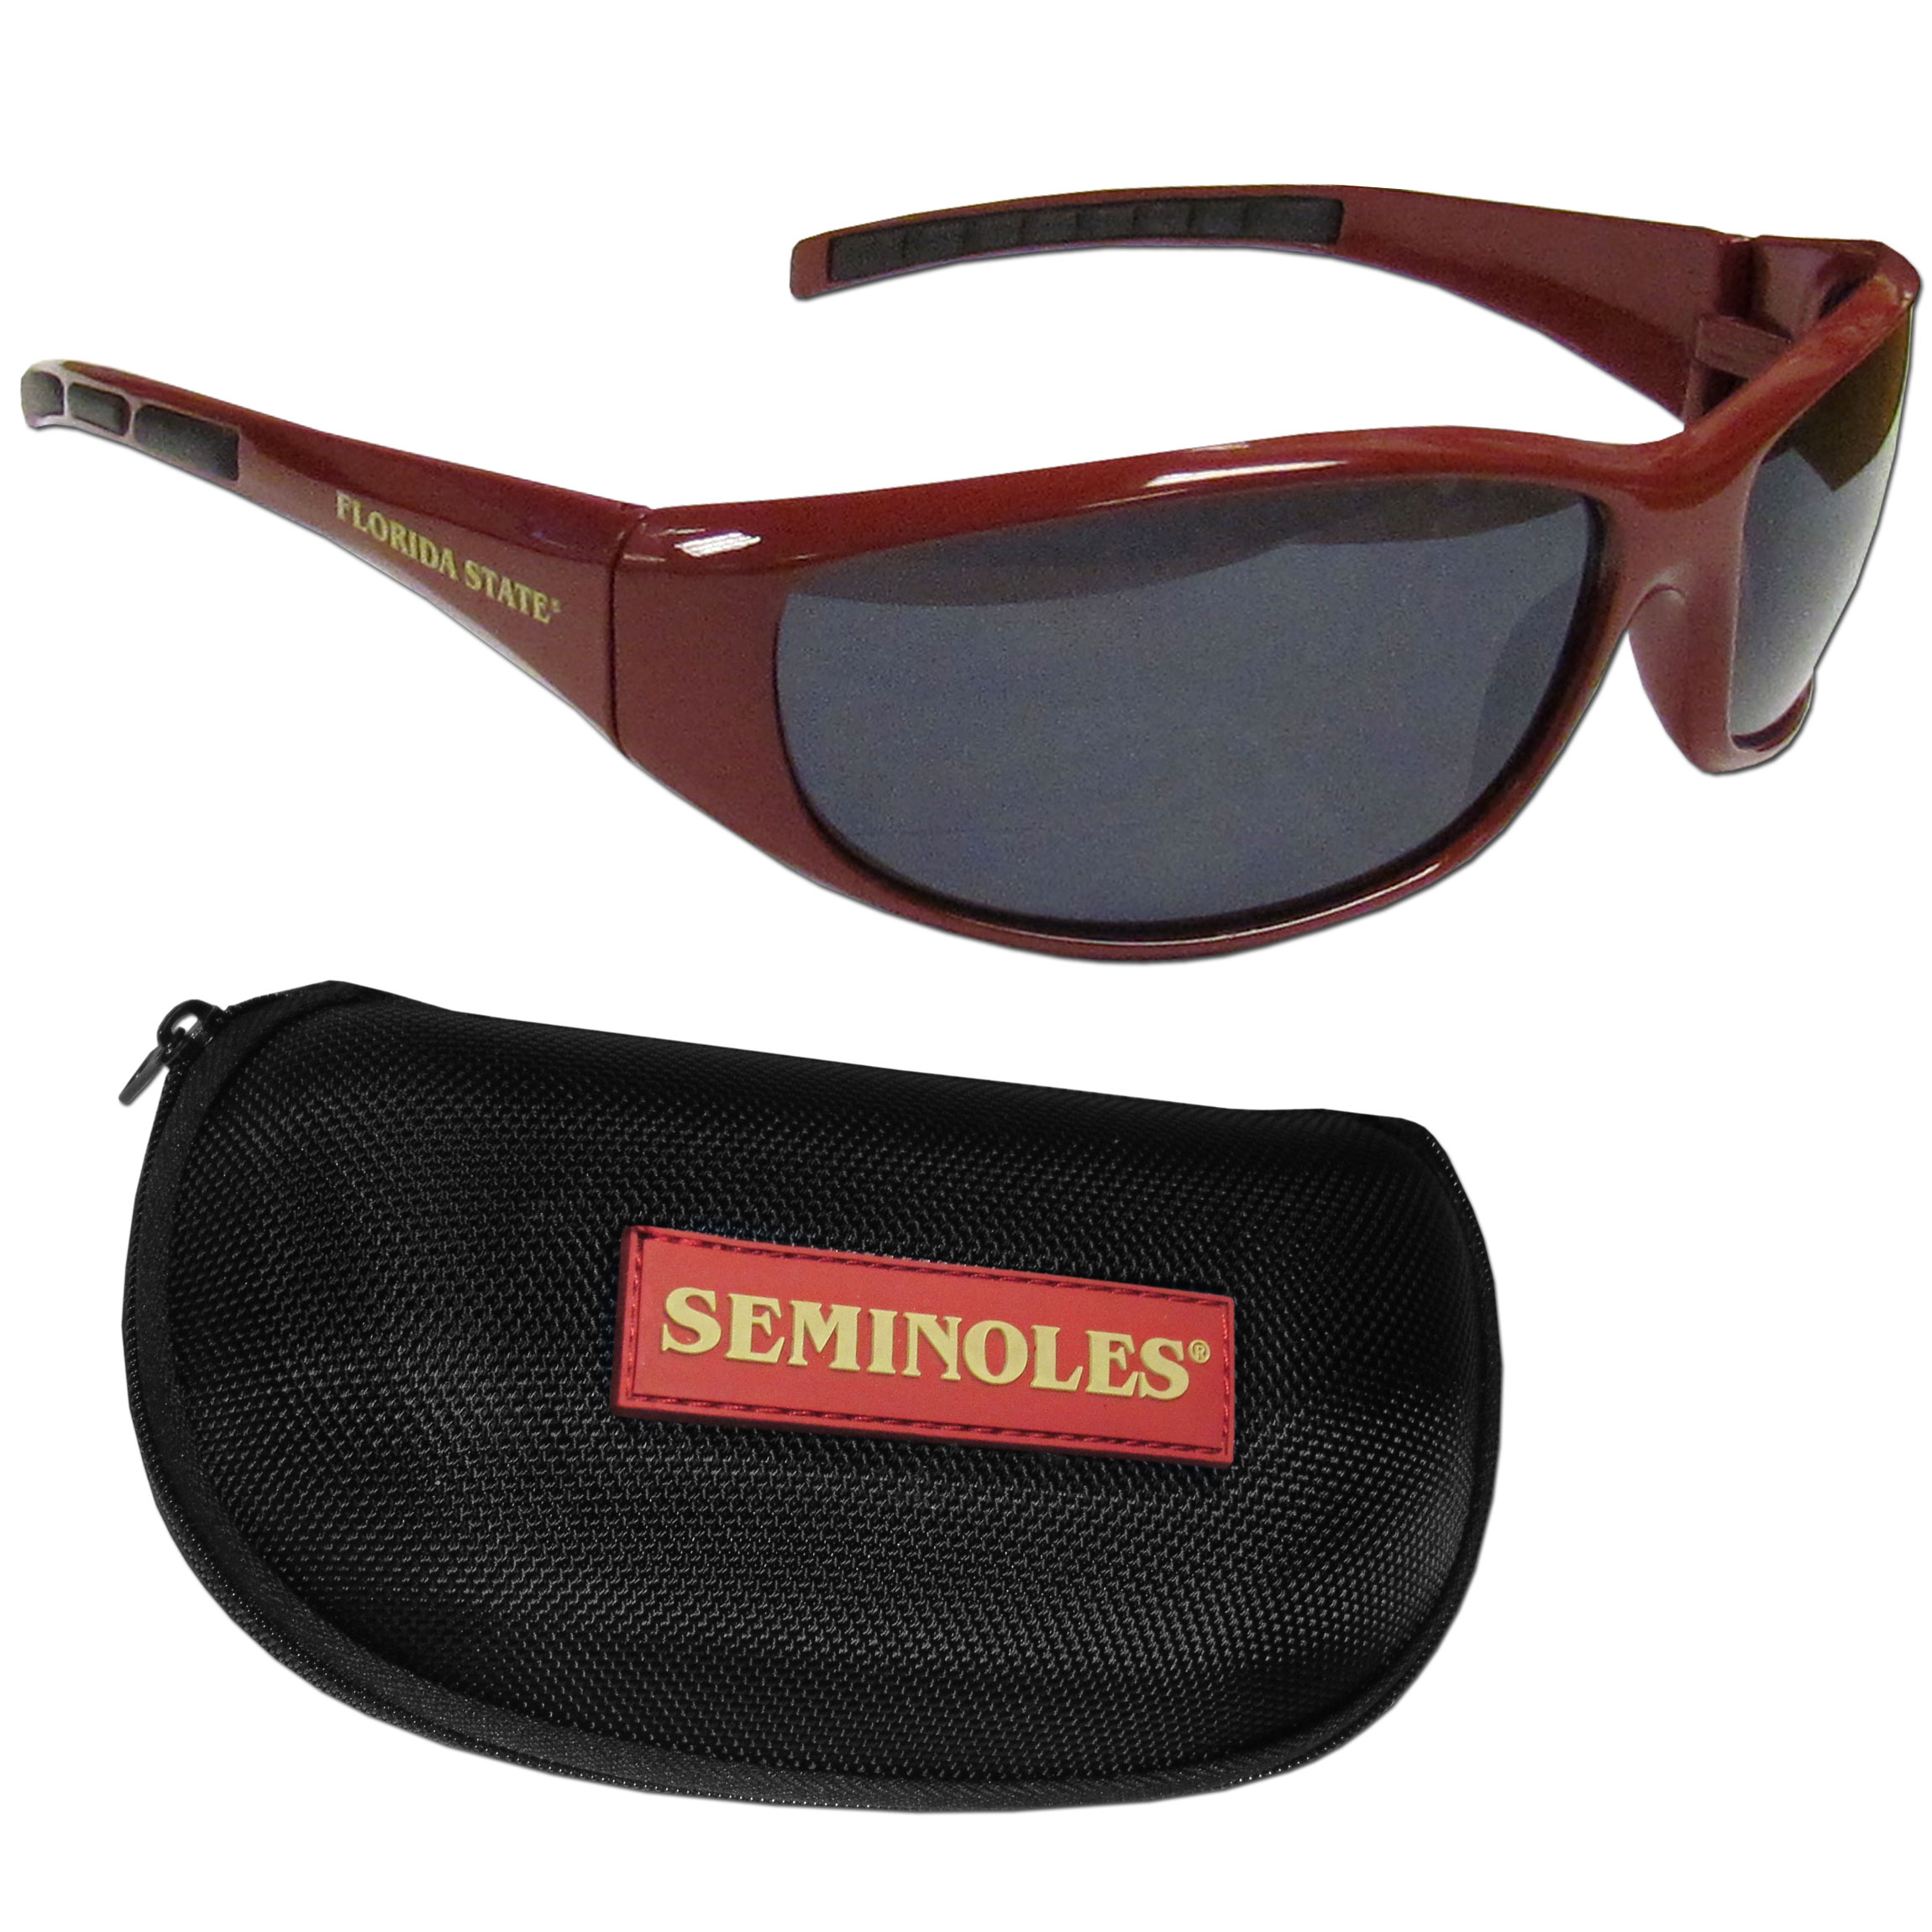 Florida St. Seminoles Wrap Sunglass and Case Set - This great set includes a high quality pair of Florida St. Seminoles wrap sunglasses and hard carrying case.